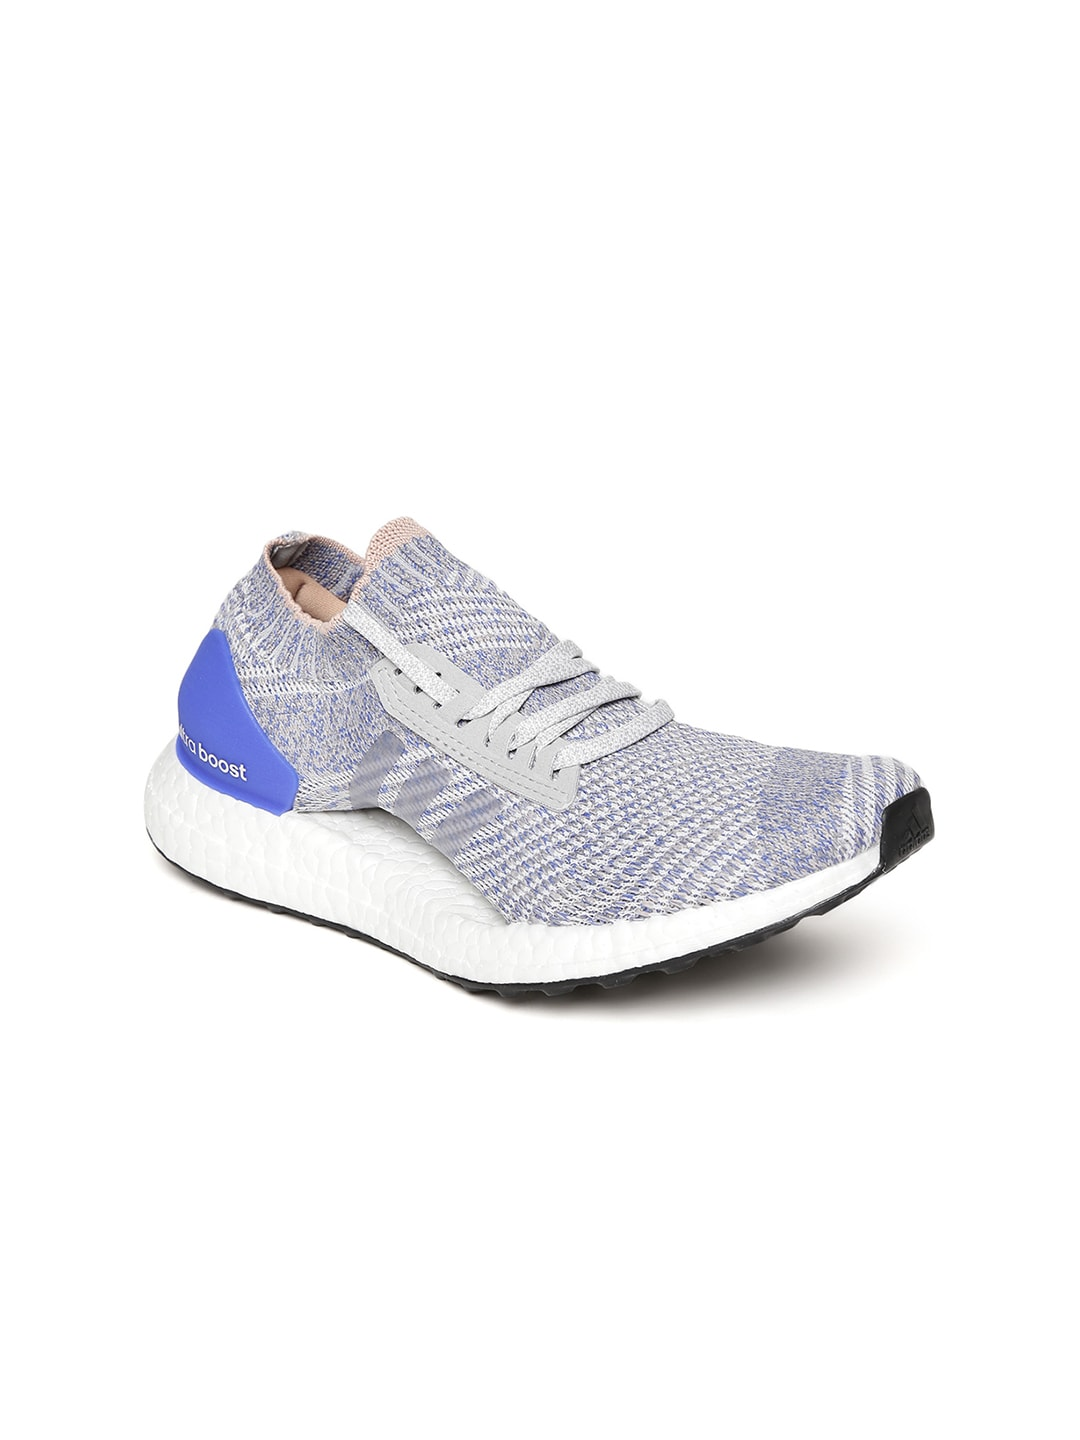 16d0c8e2e5d1 Running Sports Shoes - Buy Running Sports Shoes online in India